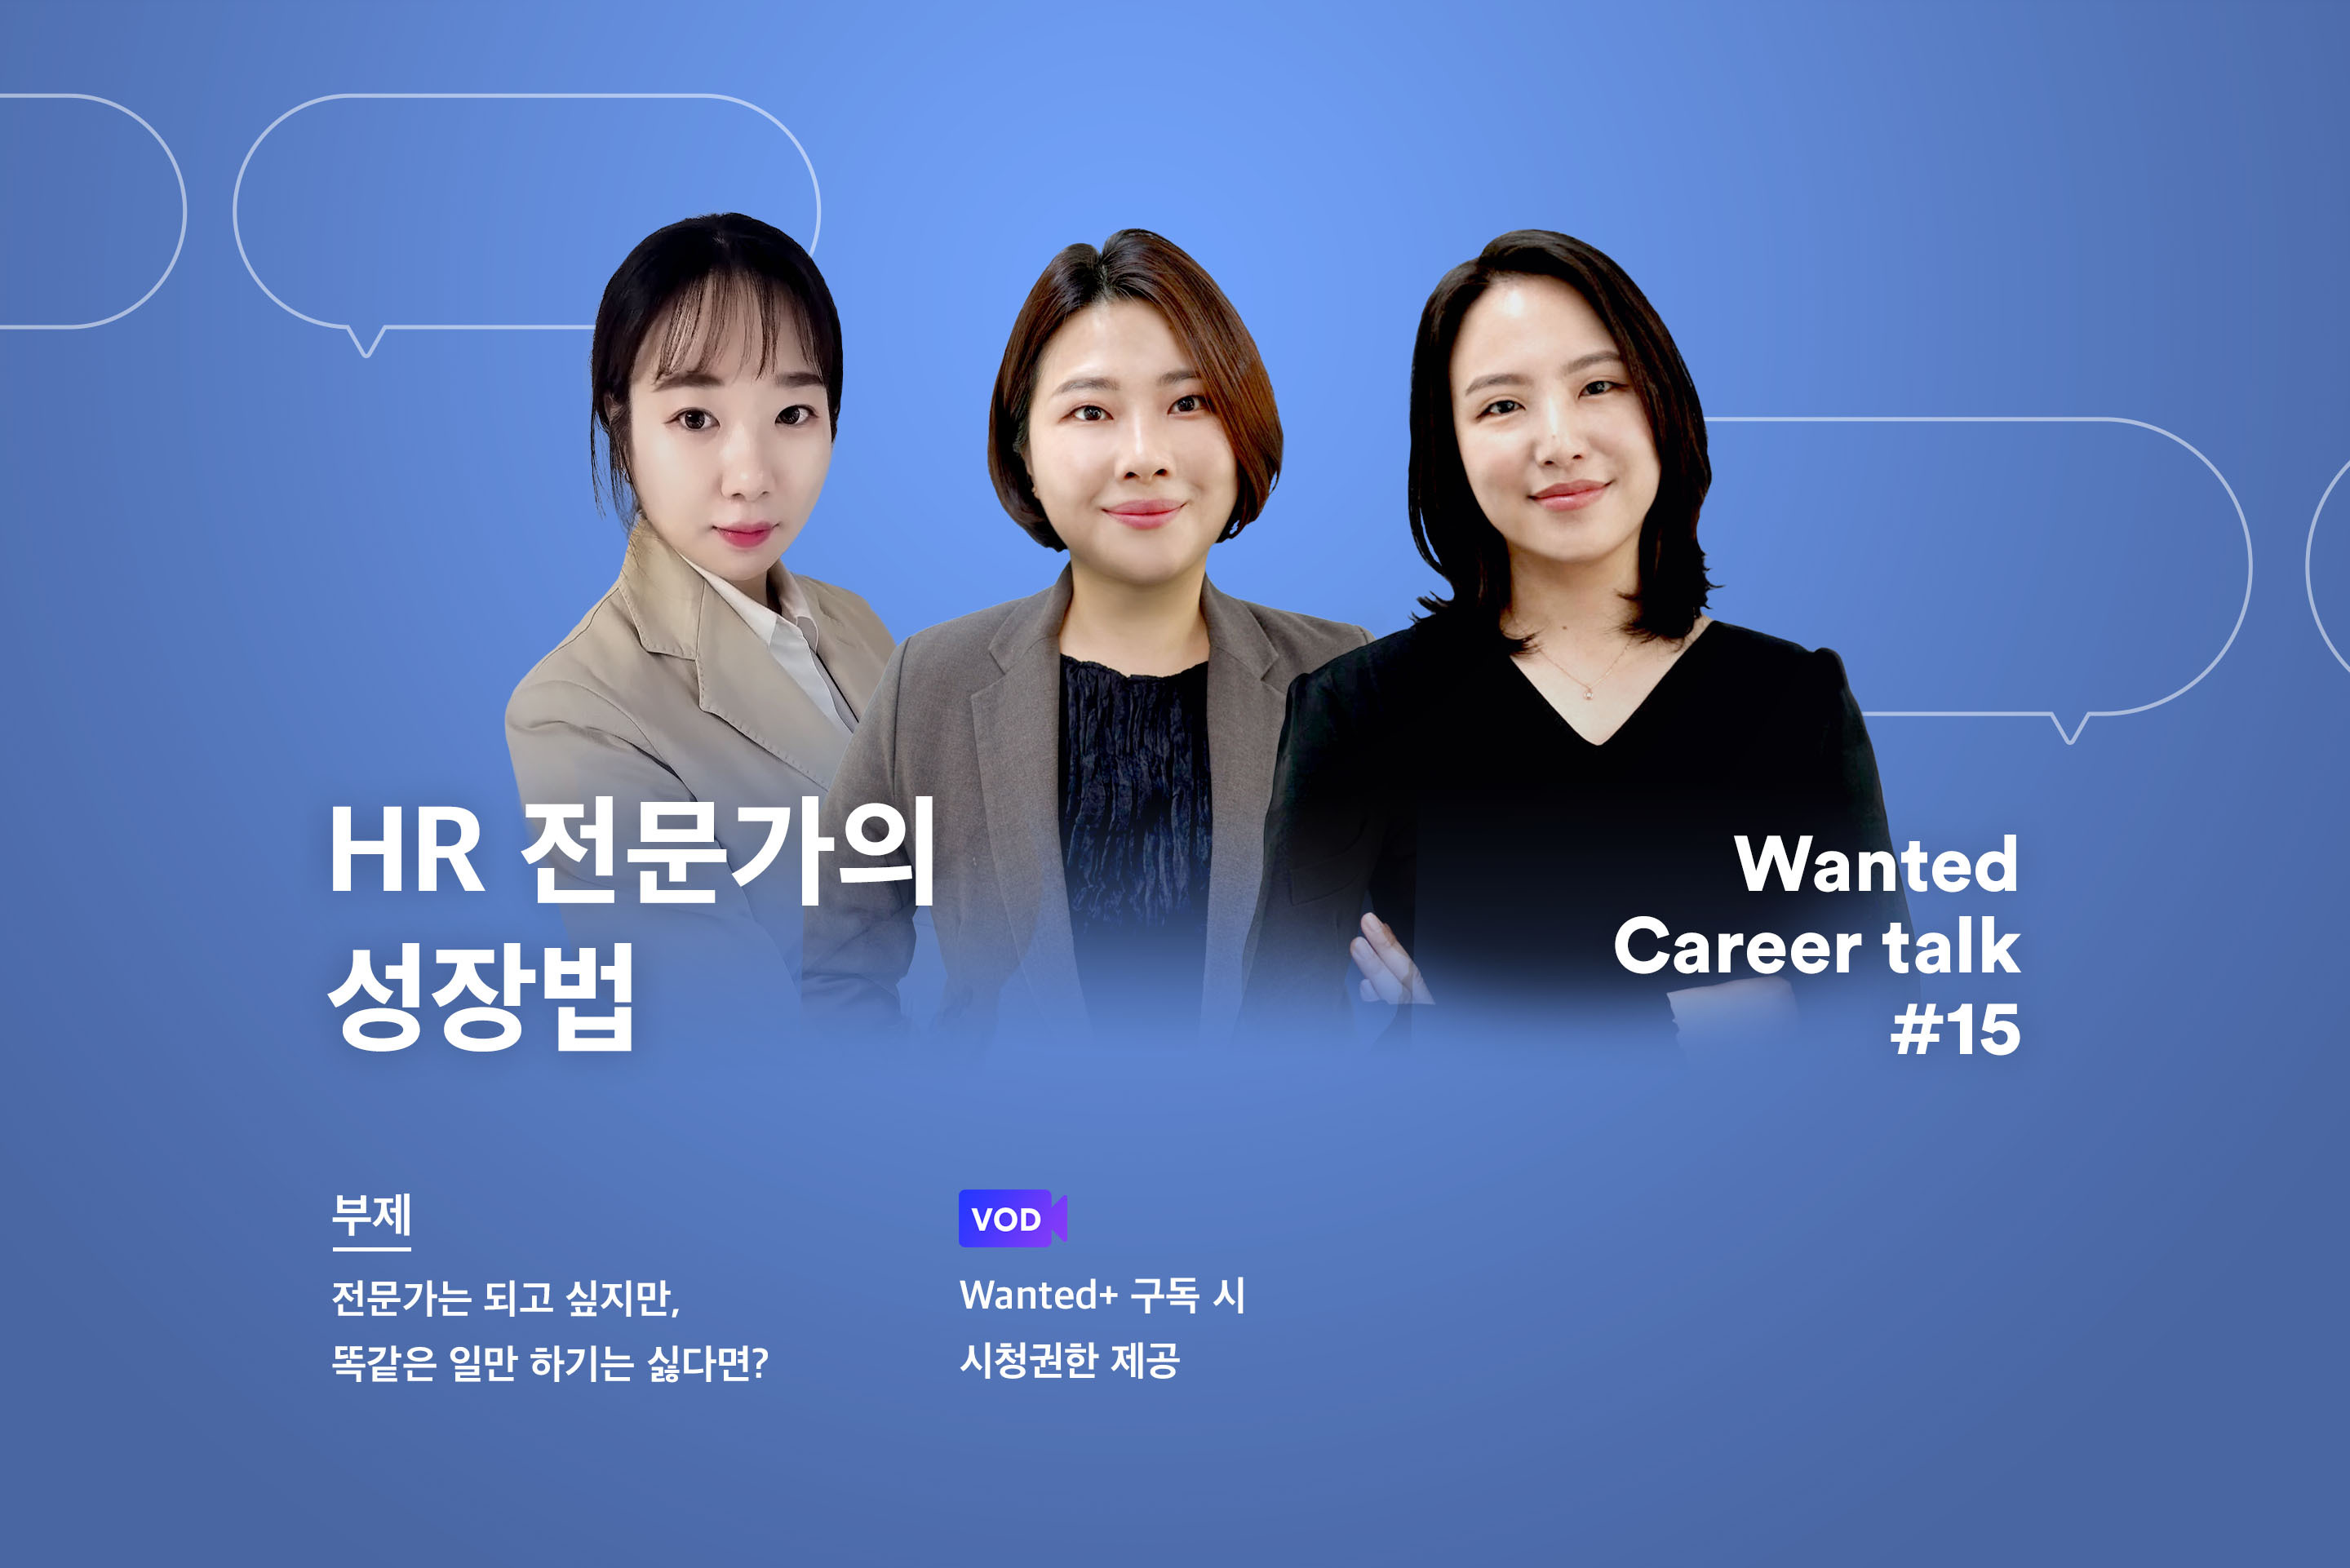 https://static.wanted.co.kr/images/events/1253/c6b0e5c6.jpg